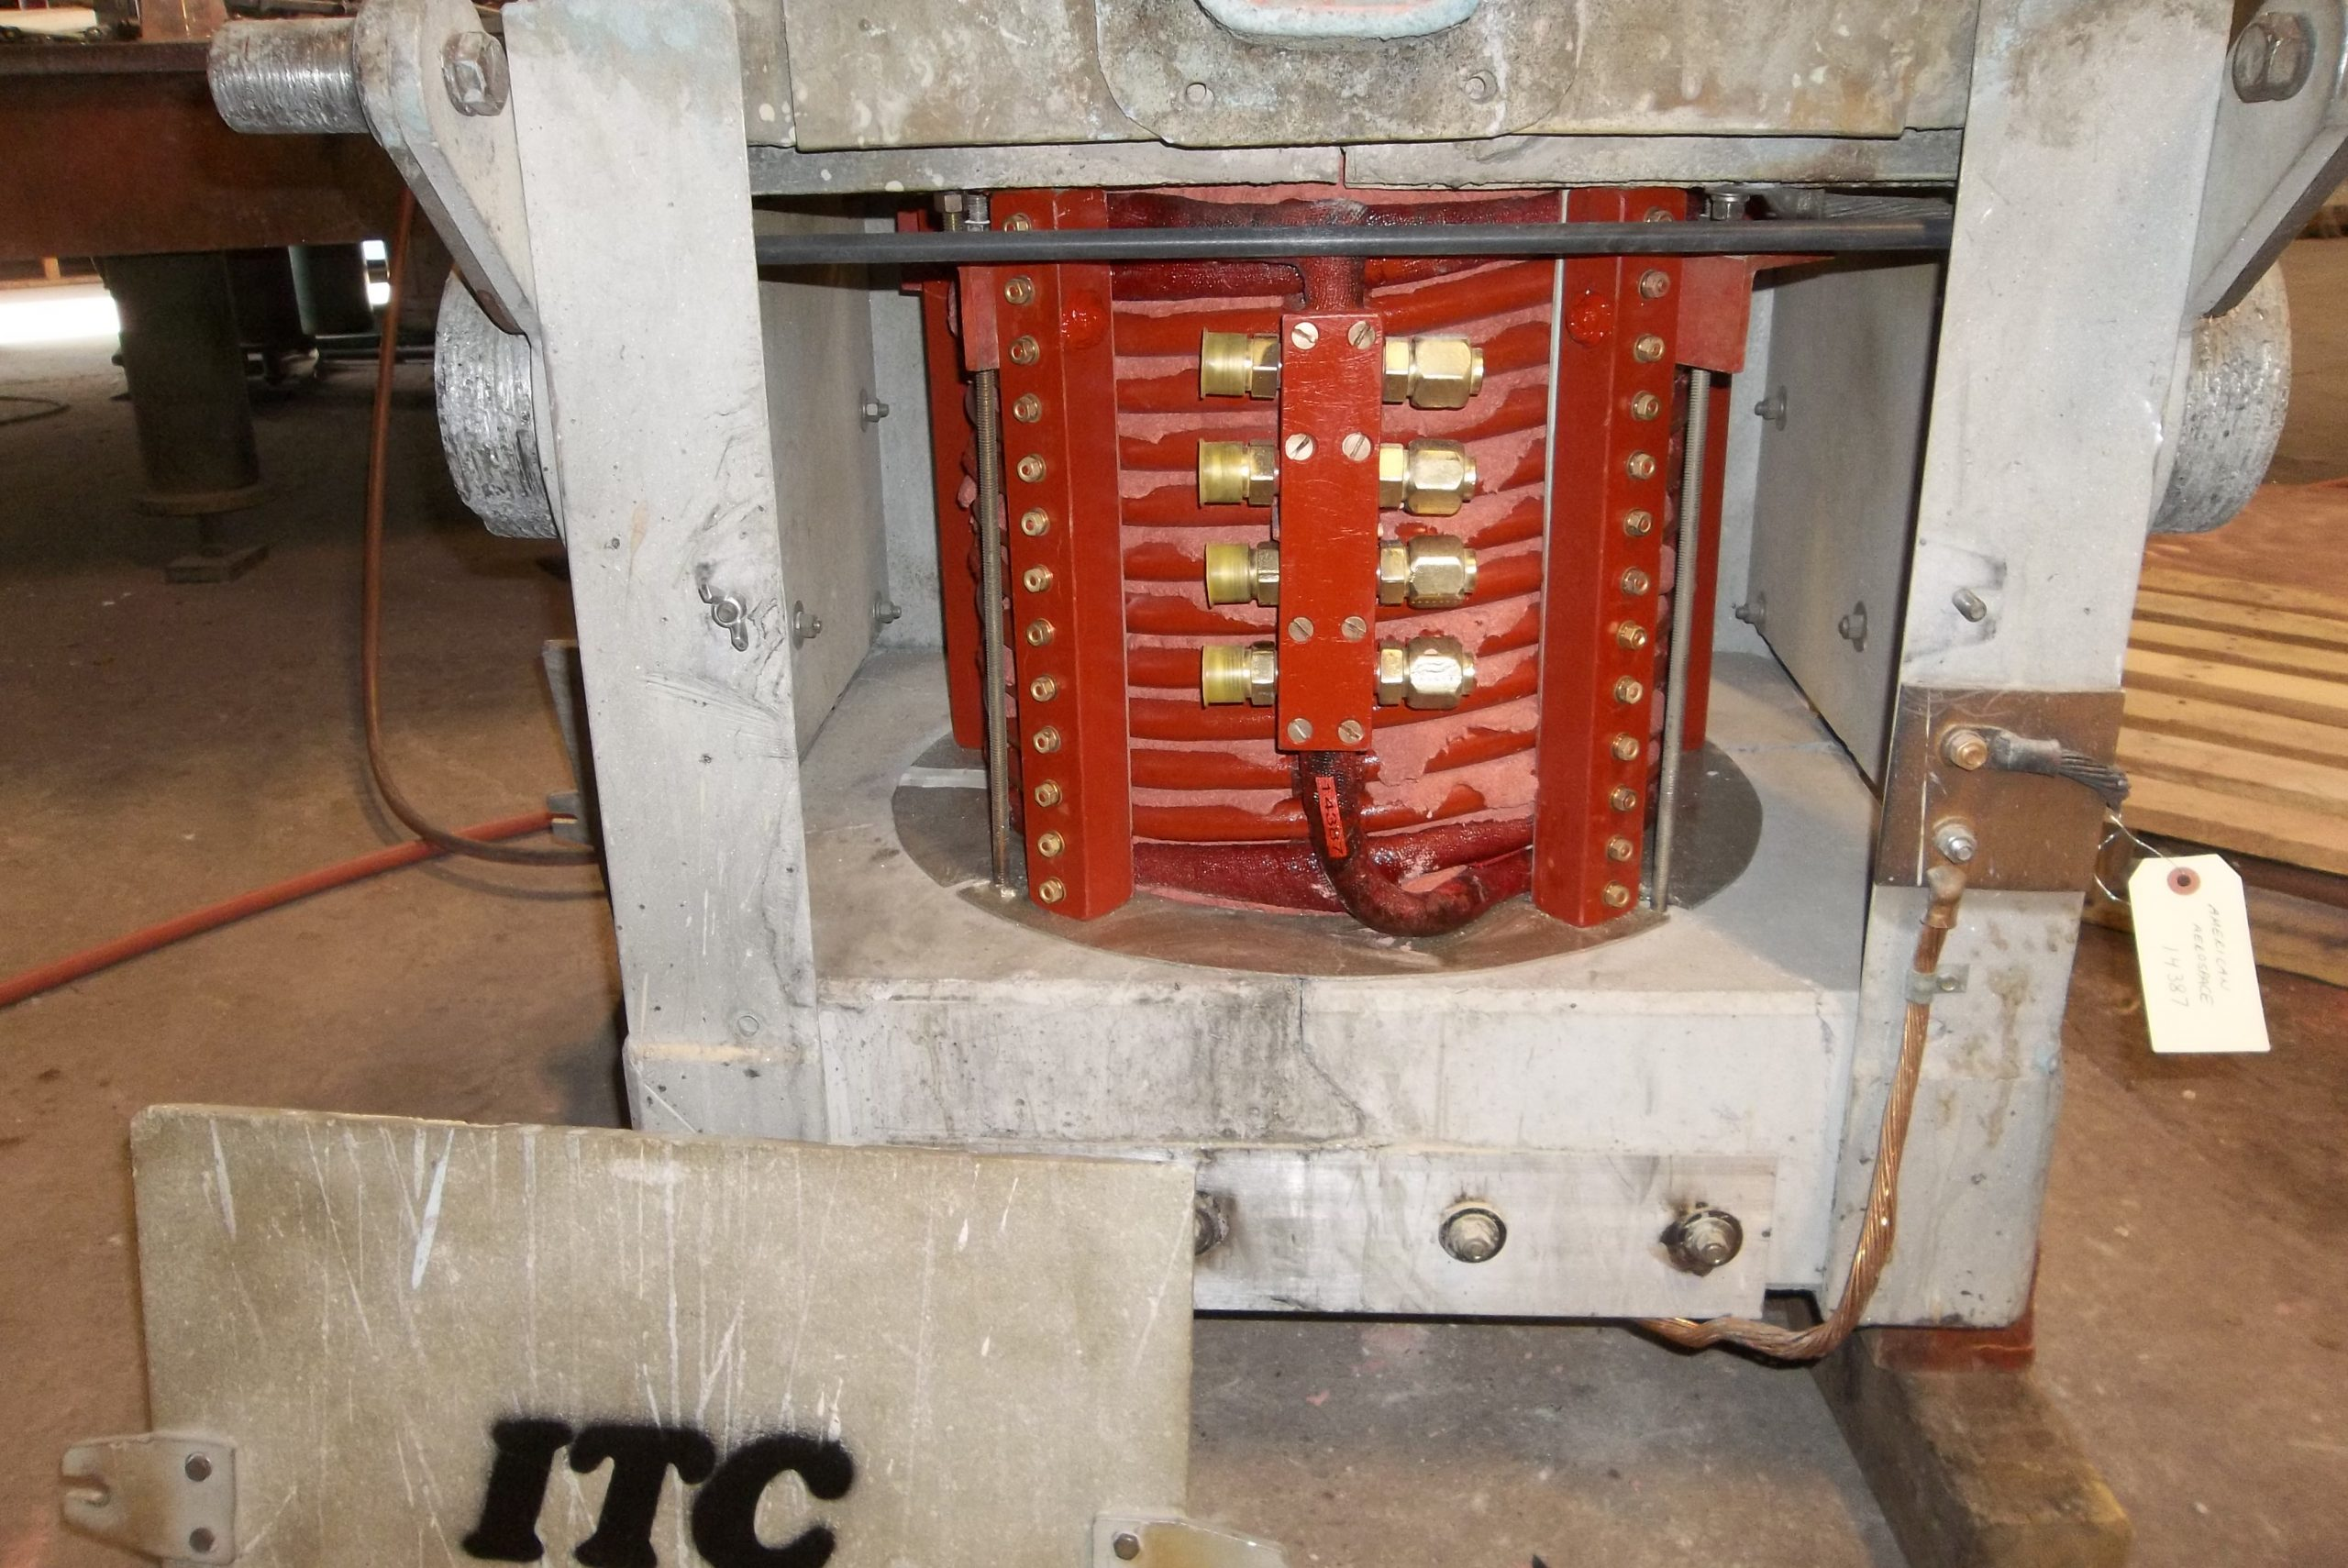 Rebuild of 300lb box furnace and coil-after